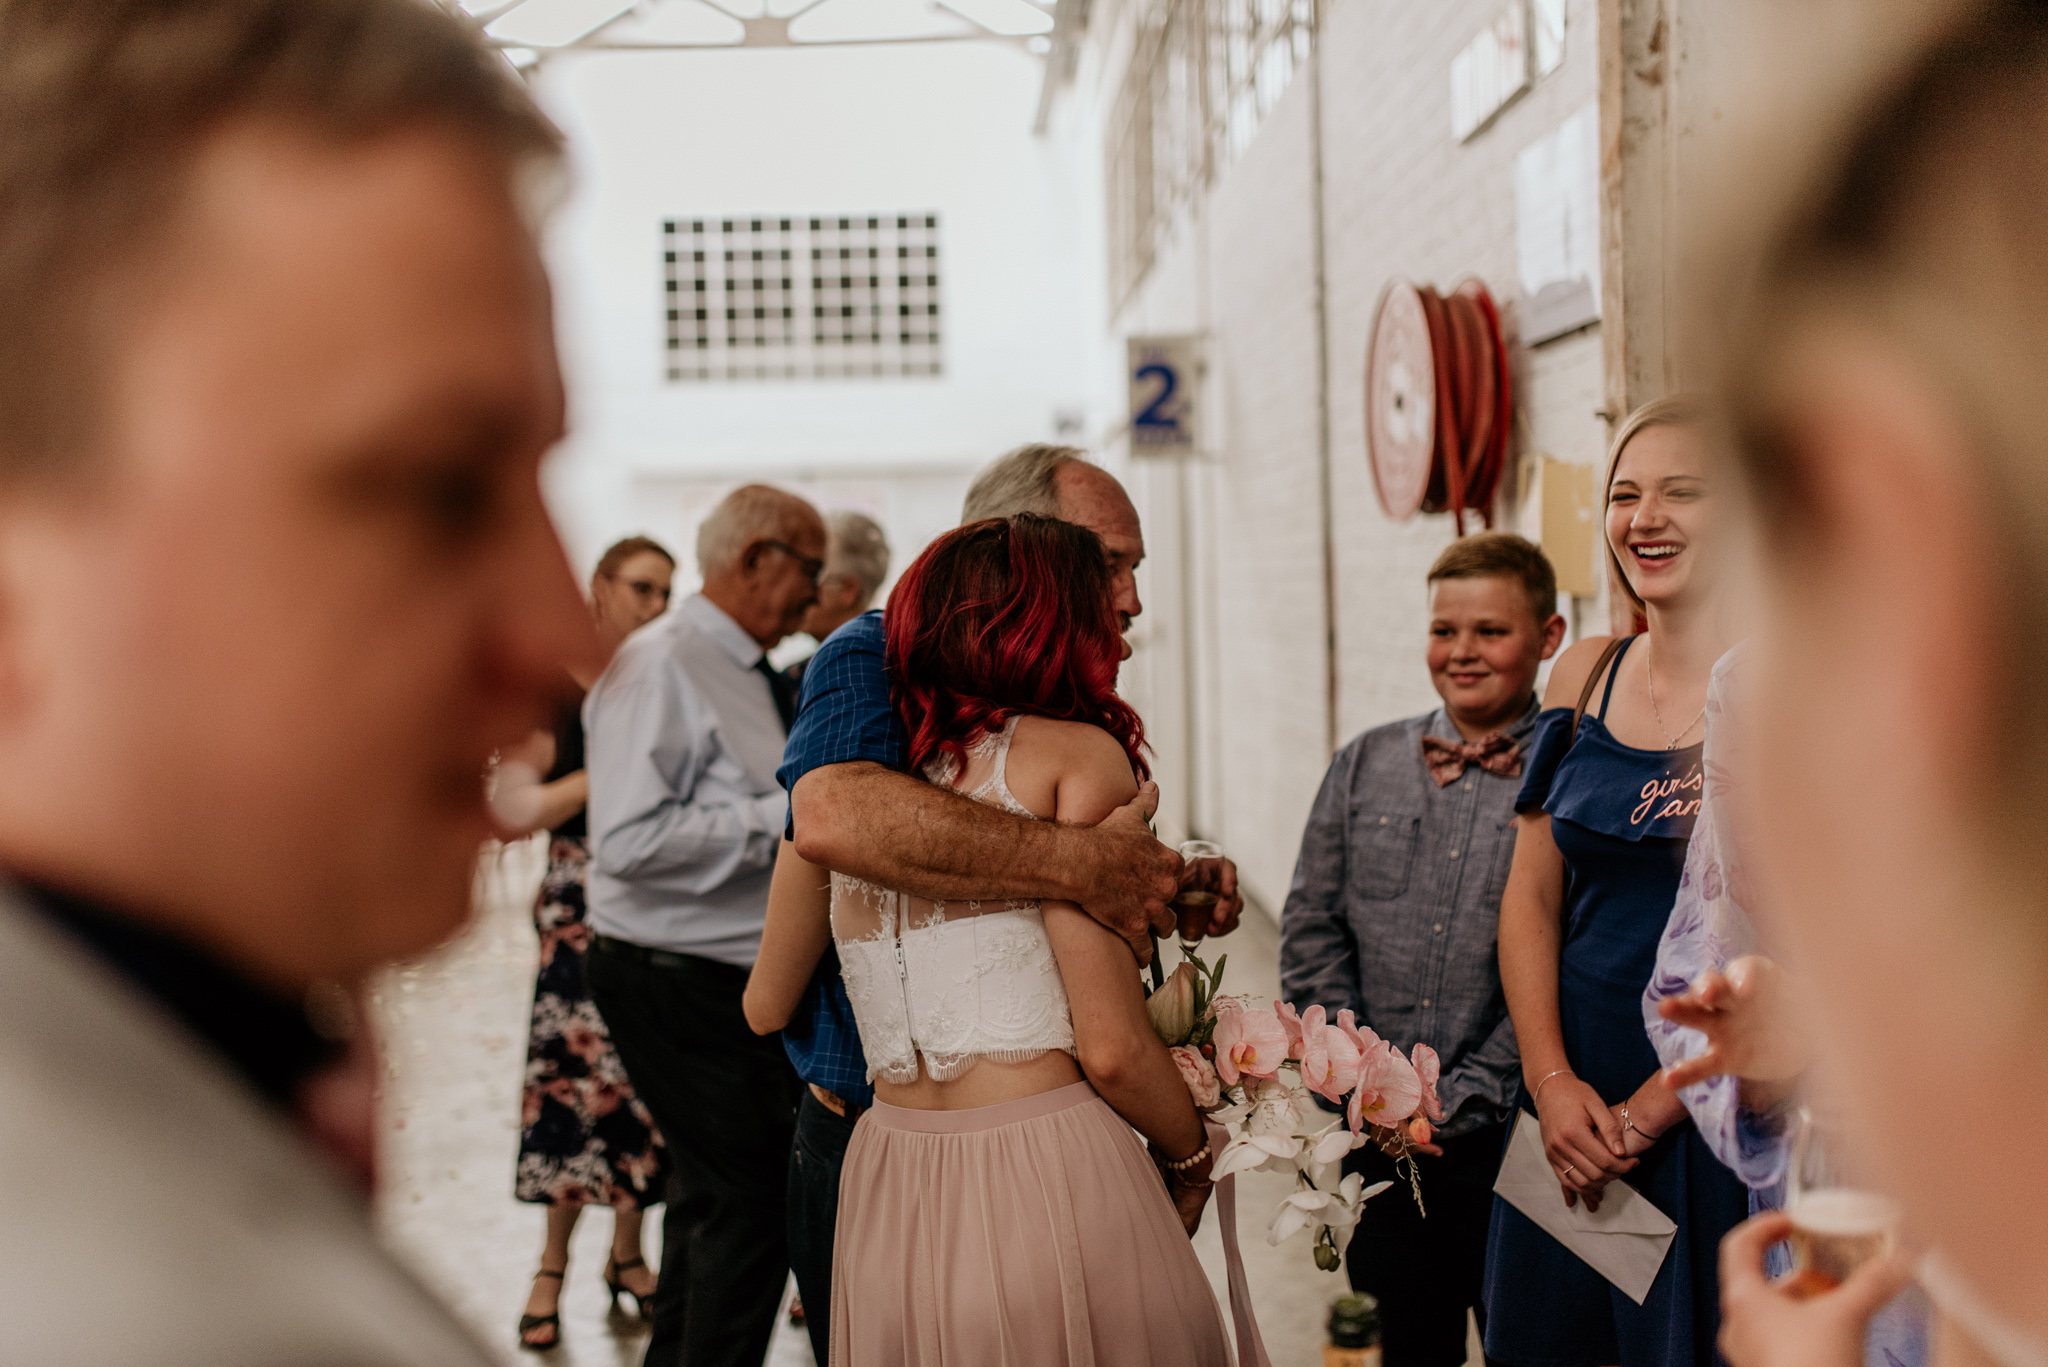 Wedding guests congratulating the bride at a johannesburg wedding